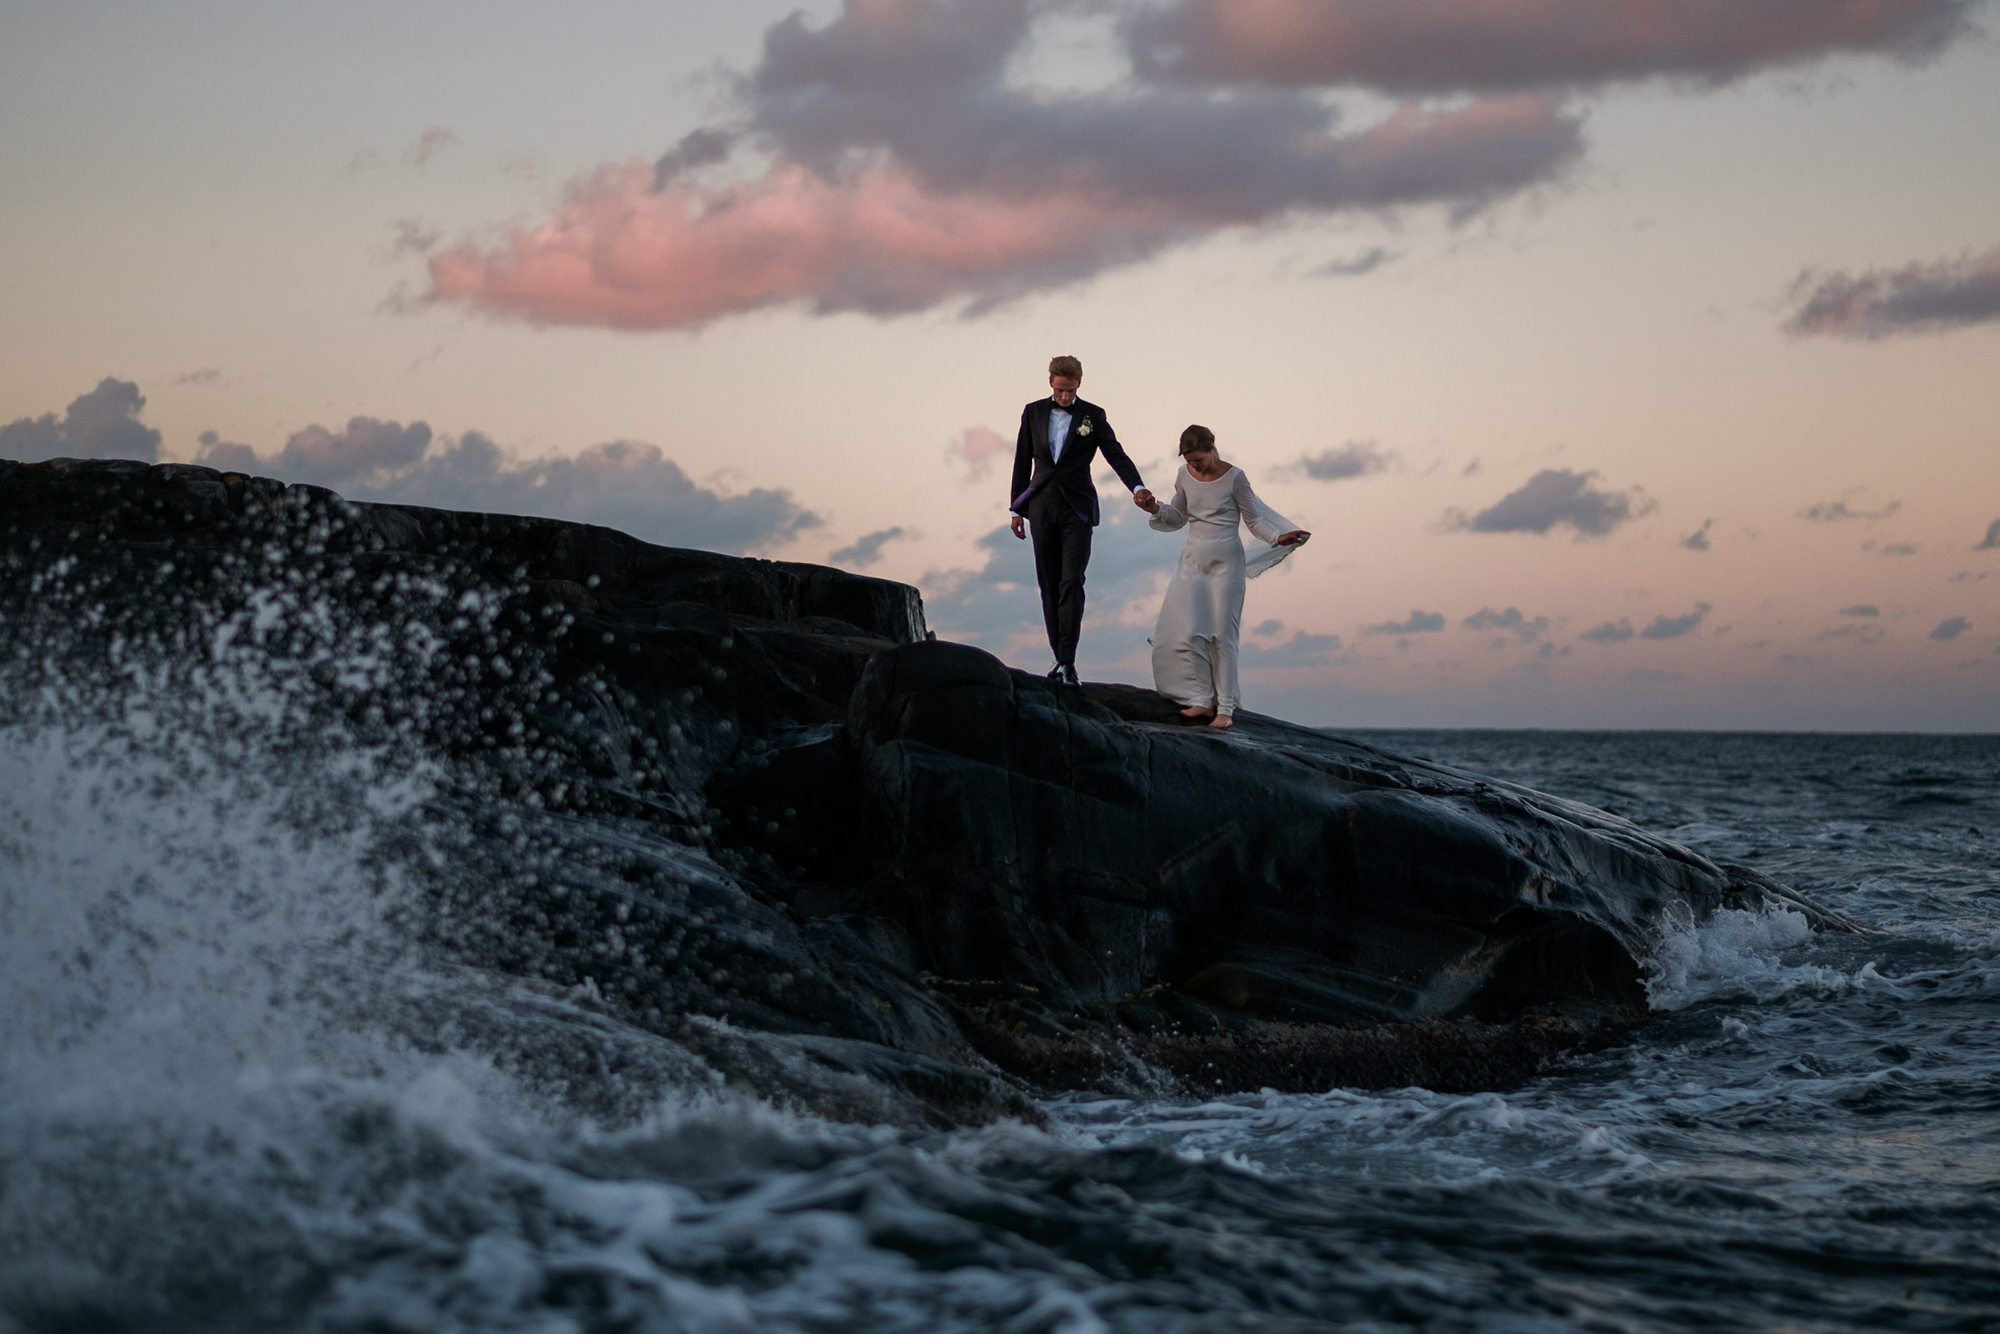 Wave crashes as couple walks on rocky beach photo by Nordica Photography